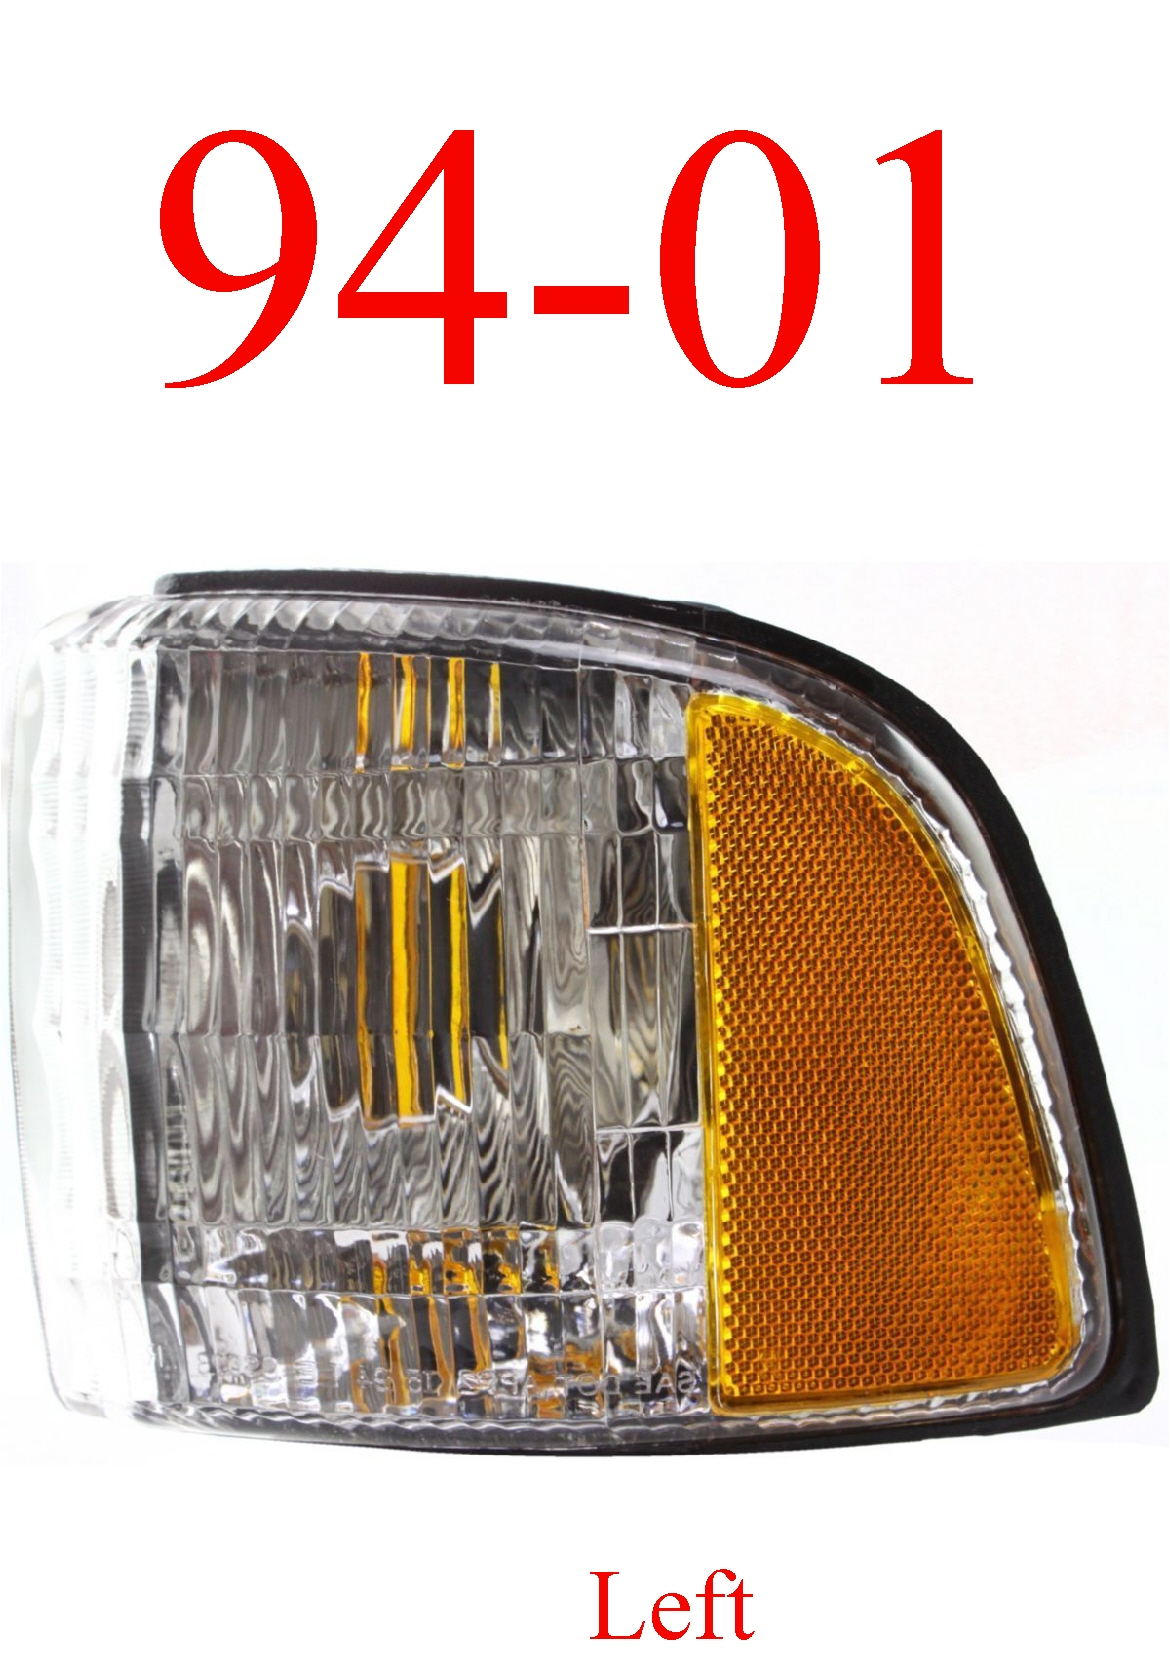 94-01 Dodge Ram Left Side Parking Light